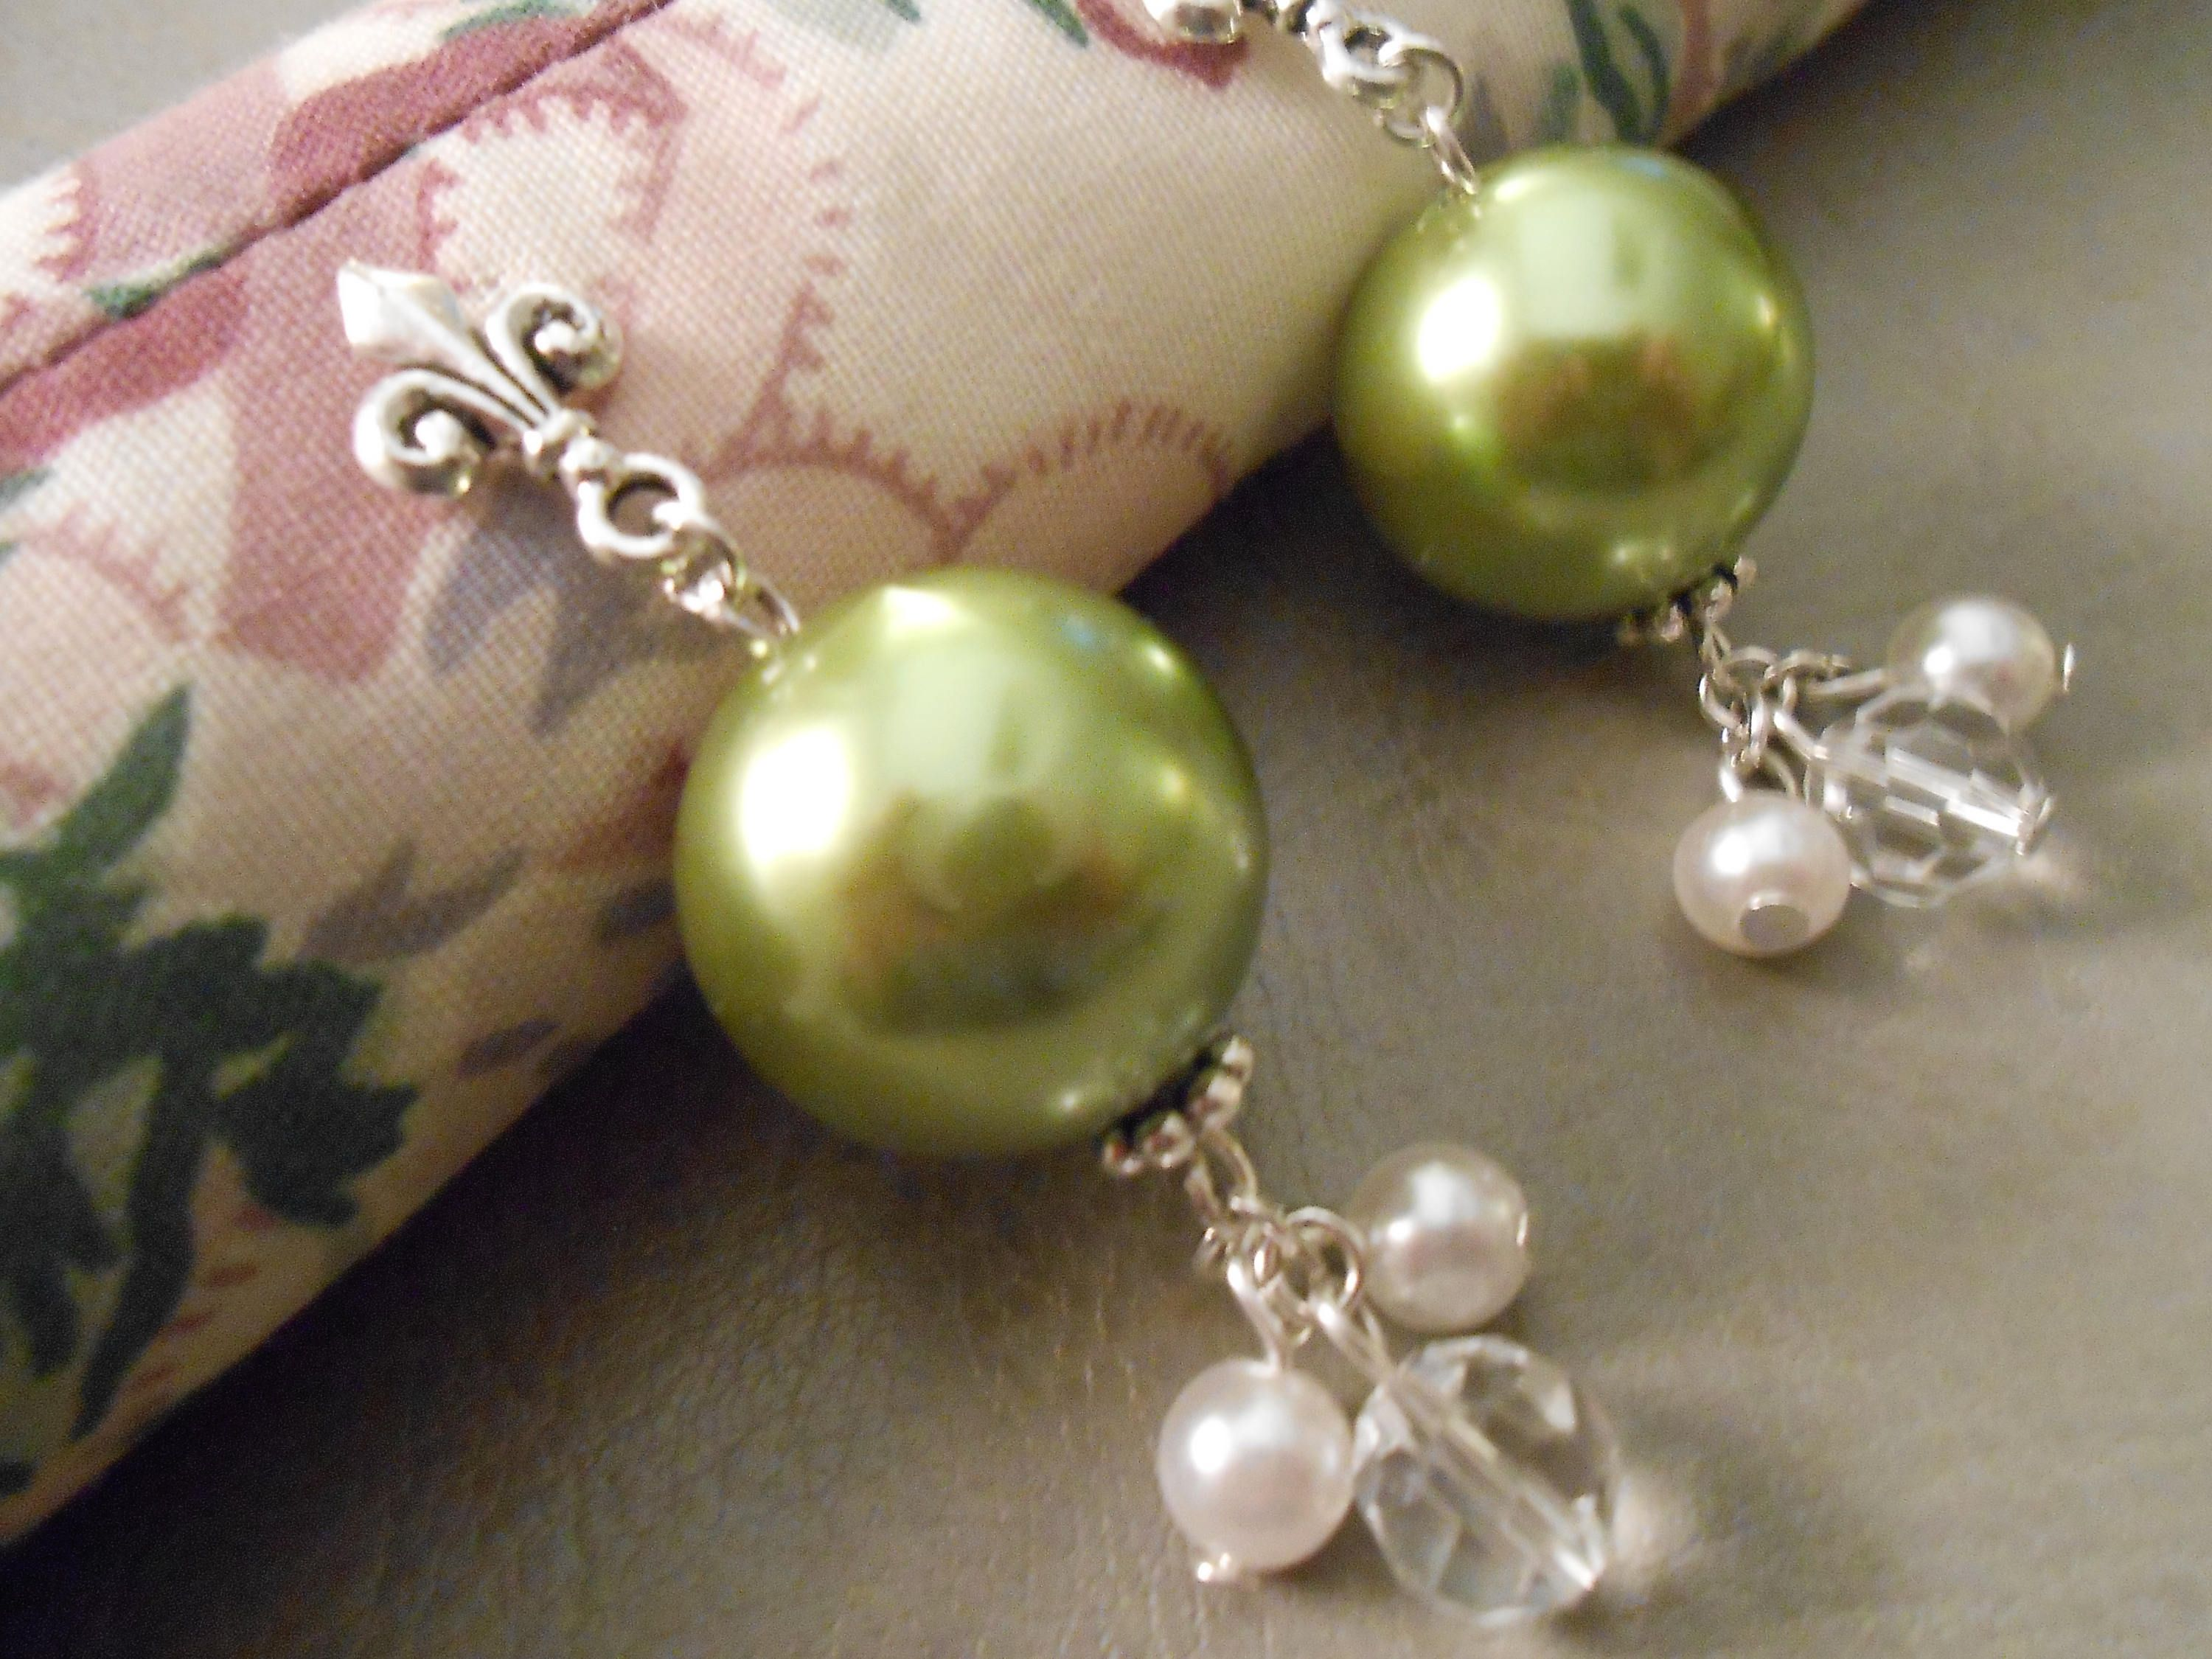 olive pearls bracelet web cropped jo designer as colorful accents green product